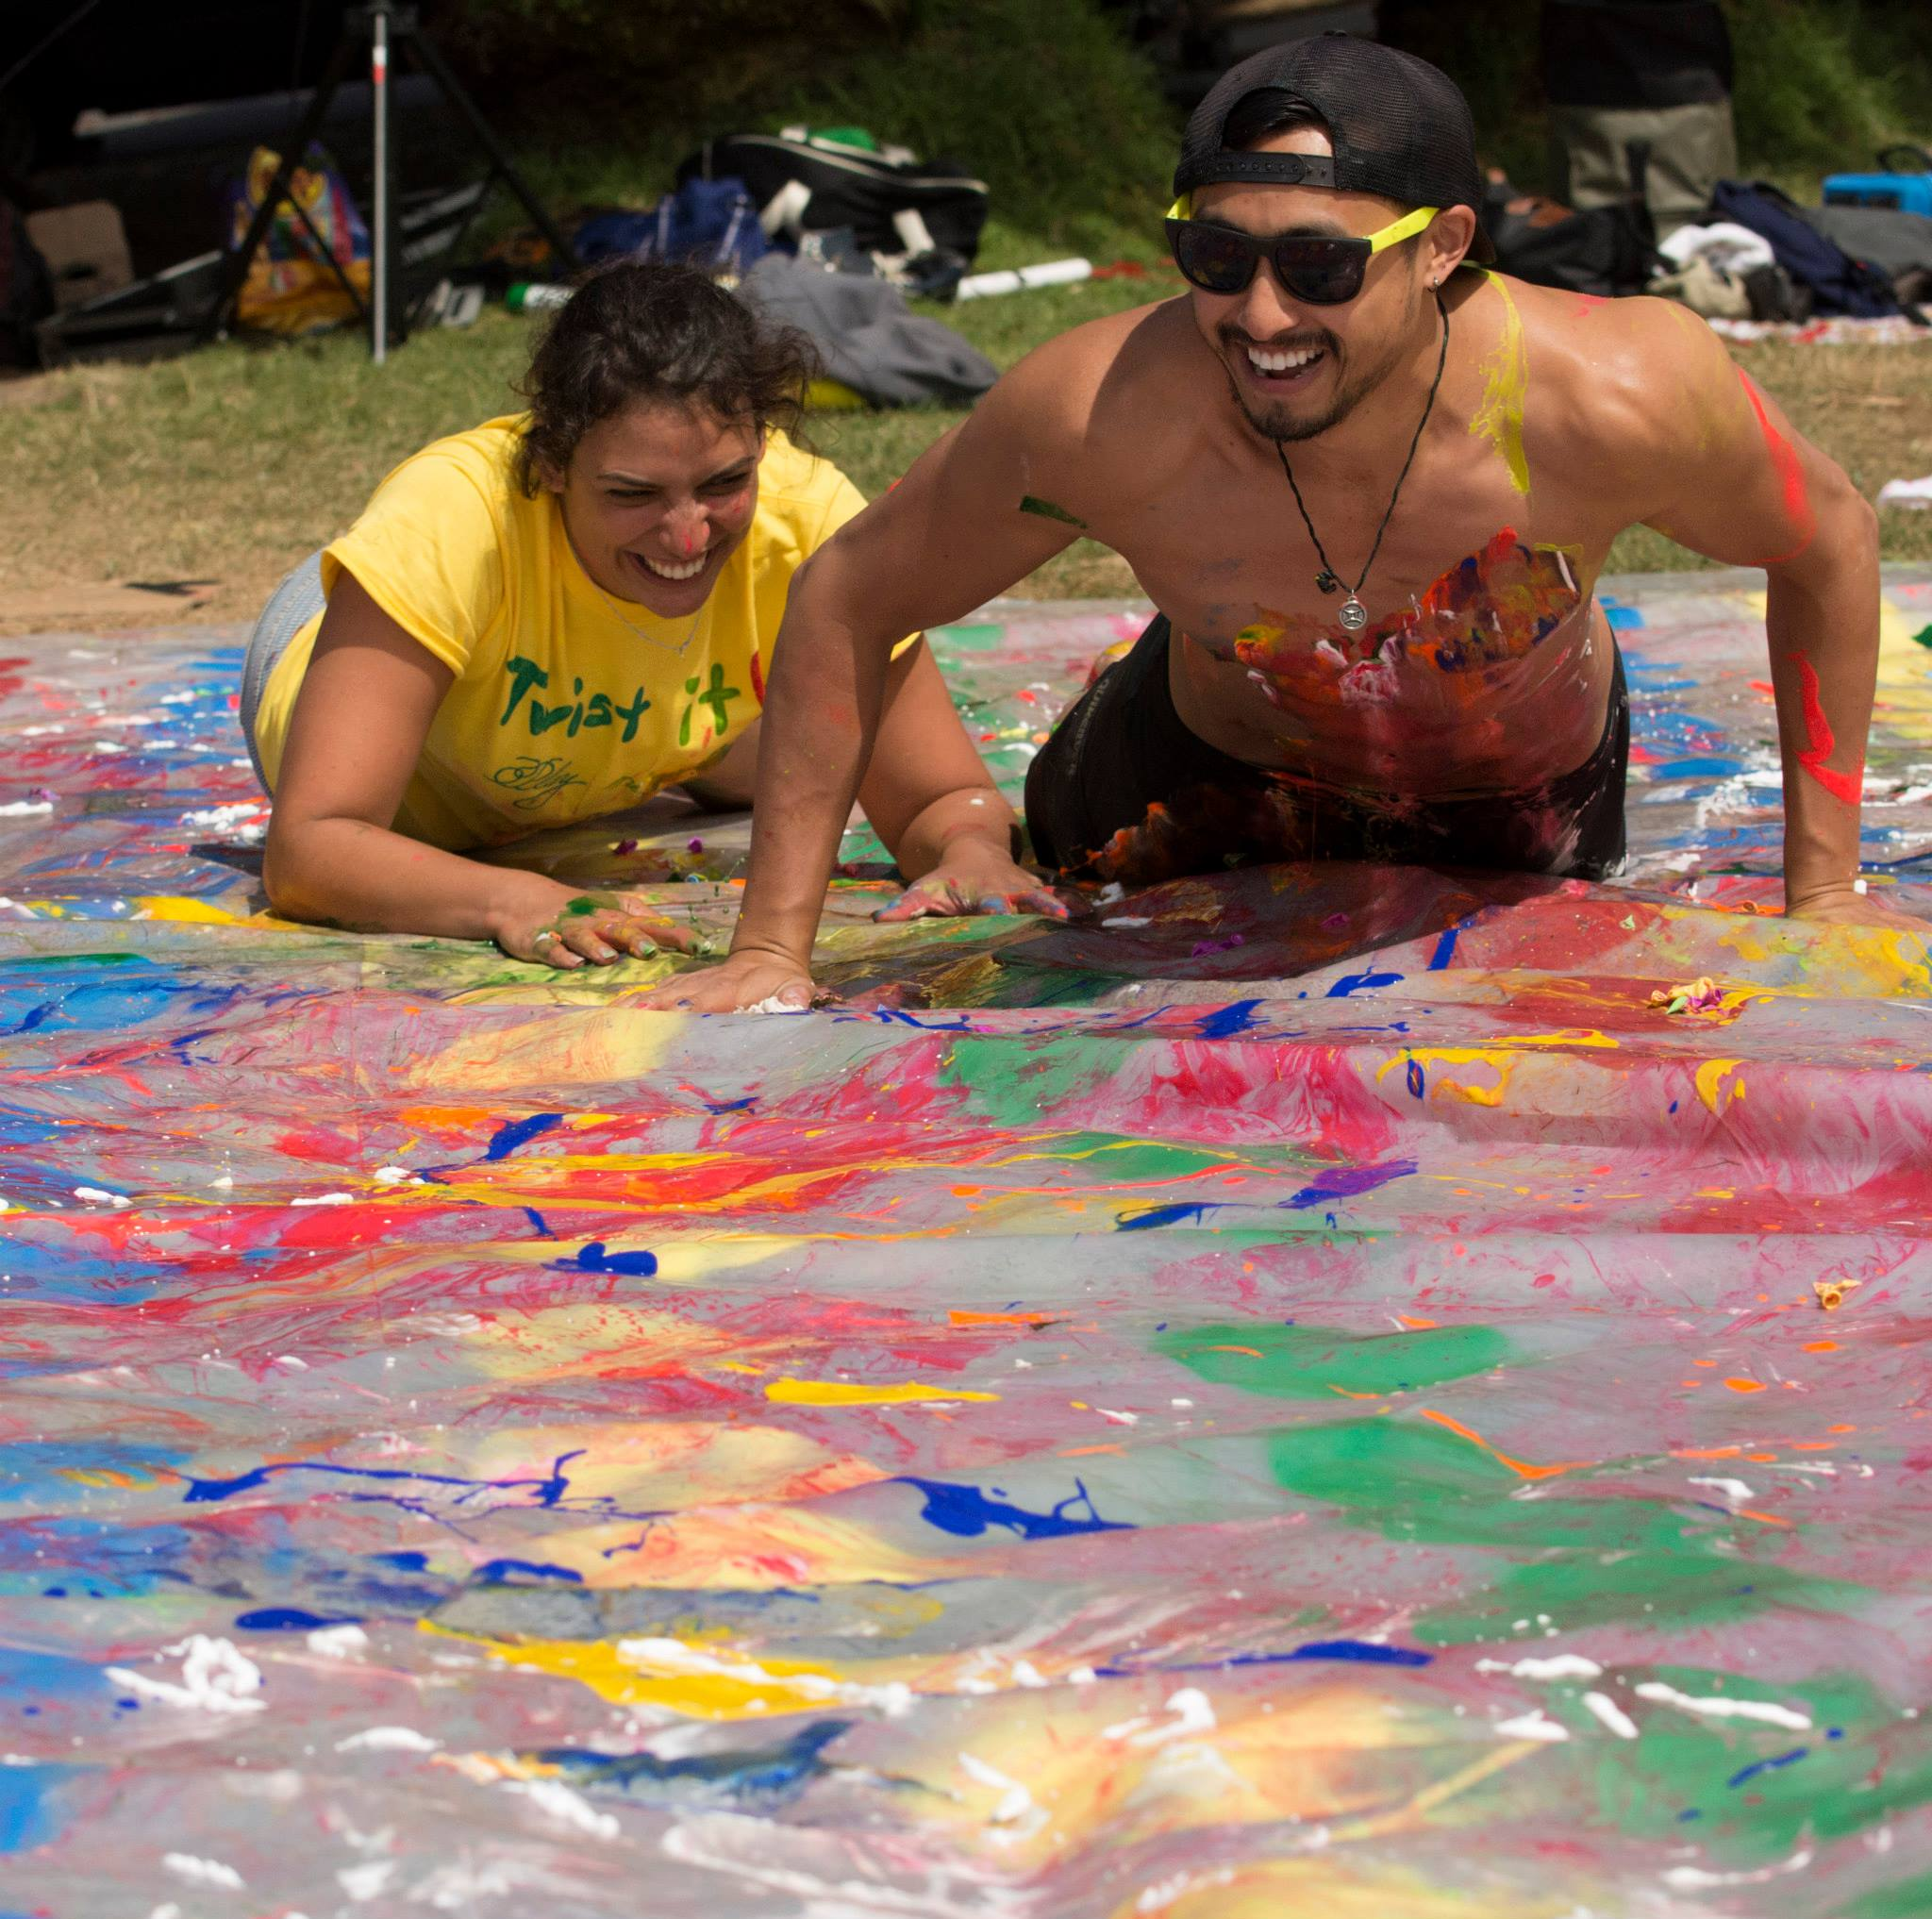 Creating Massive Messy Twister at Dolores Park